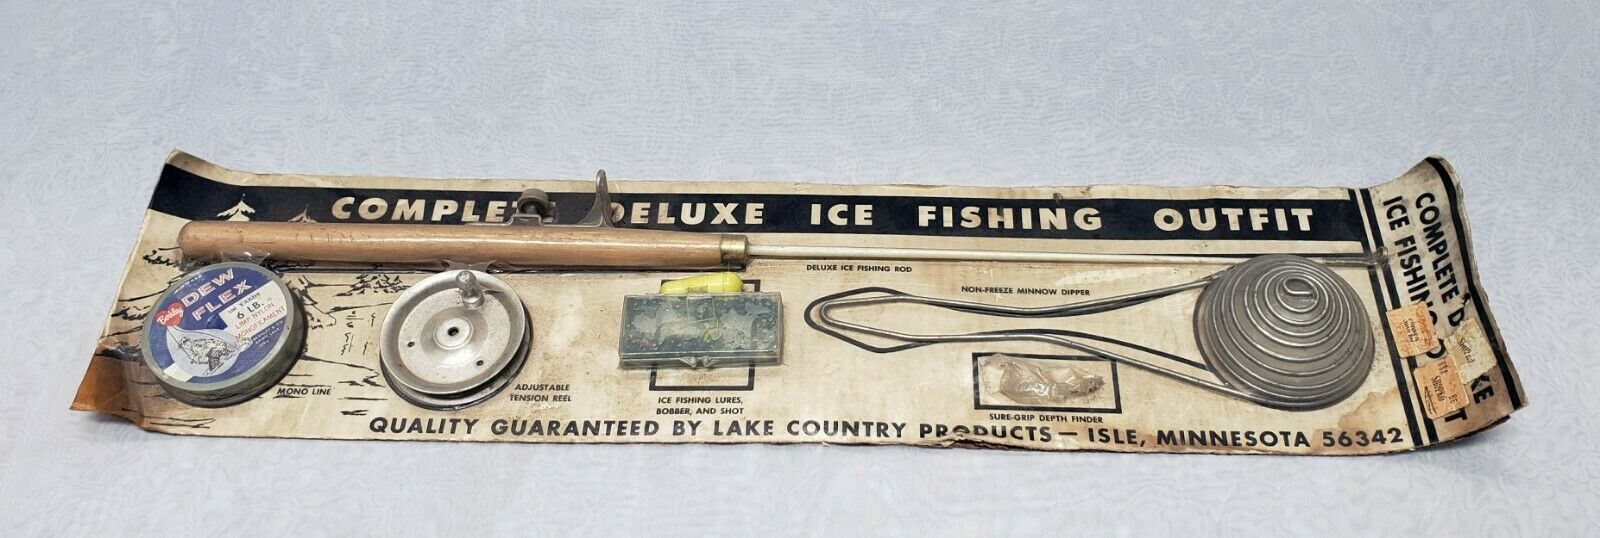 Vintage Complete Deluxe Ice Fishing Kit   outlet online store